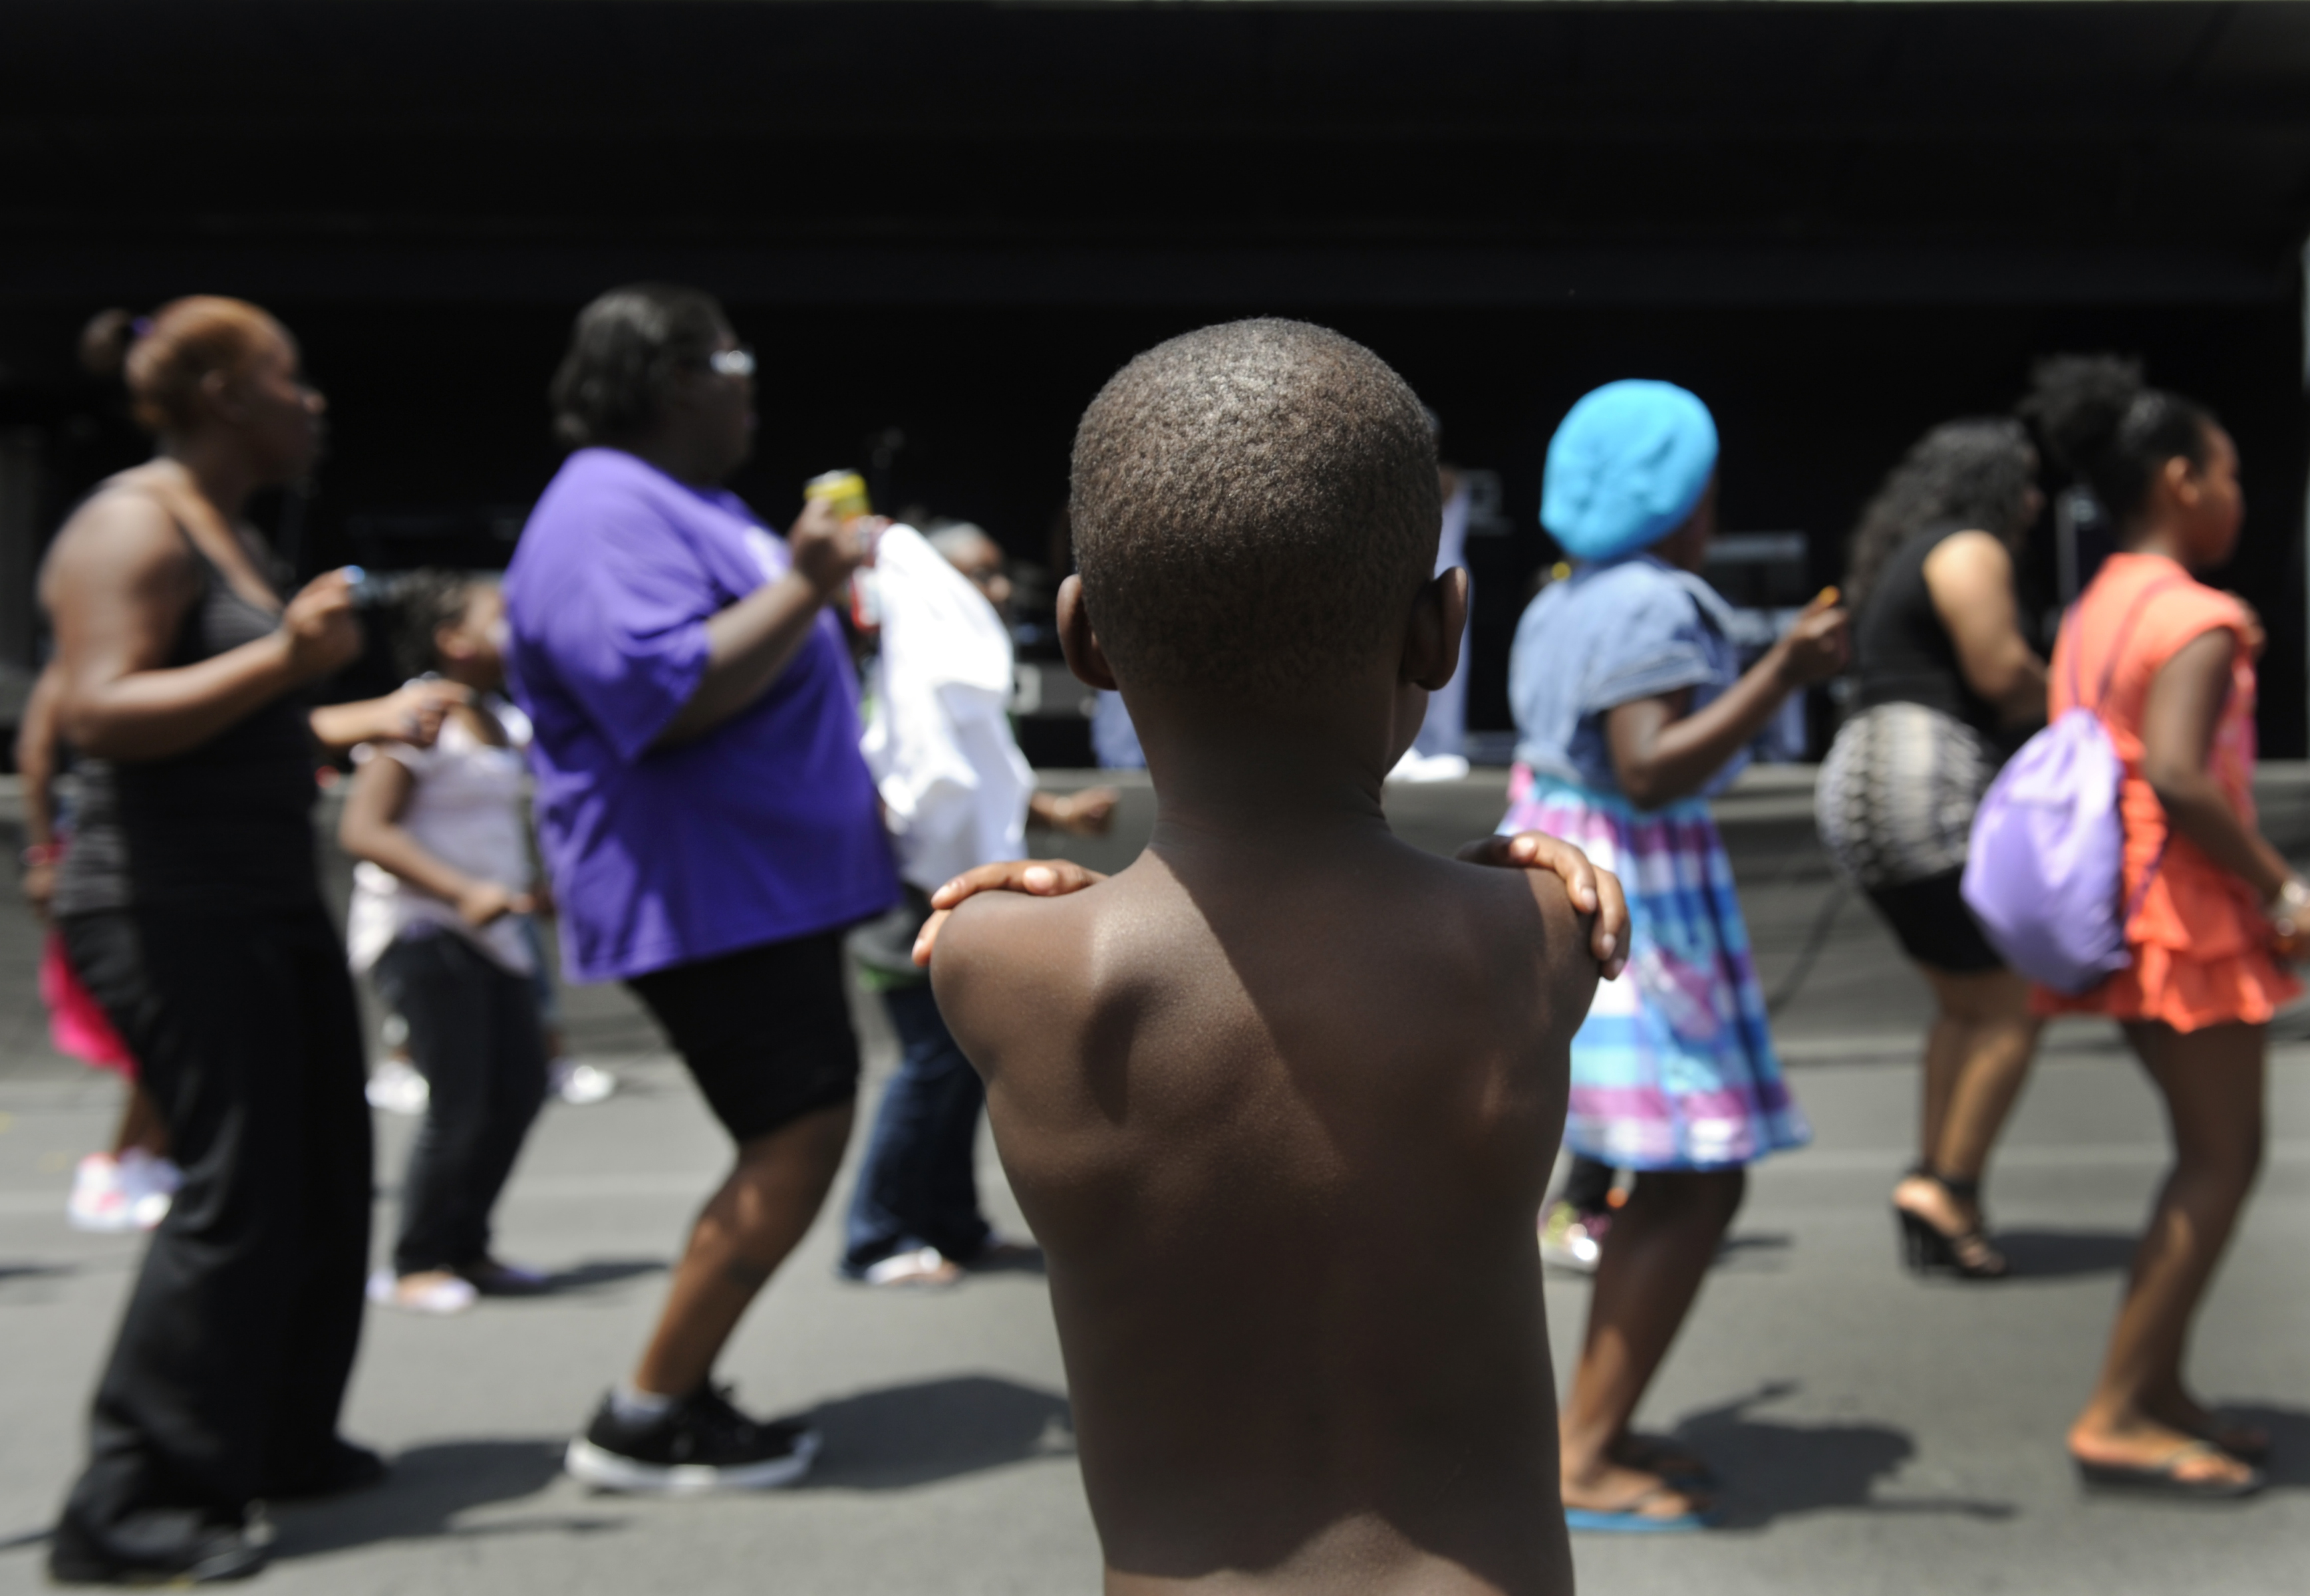 LaTrone Taylor-Witherspoon, 4, watches as a crowd gathers in front of the main stage at the festival to do the Cupid Shuffle. The Friends of Blair Caldwell African American Research Library Foundation hosts the 2011 Denver Juneteenth Celebration: We Defin